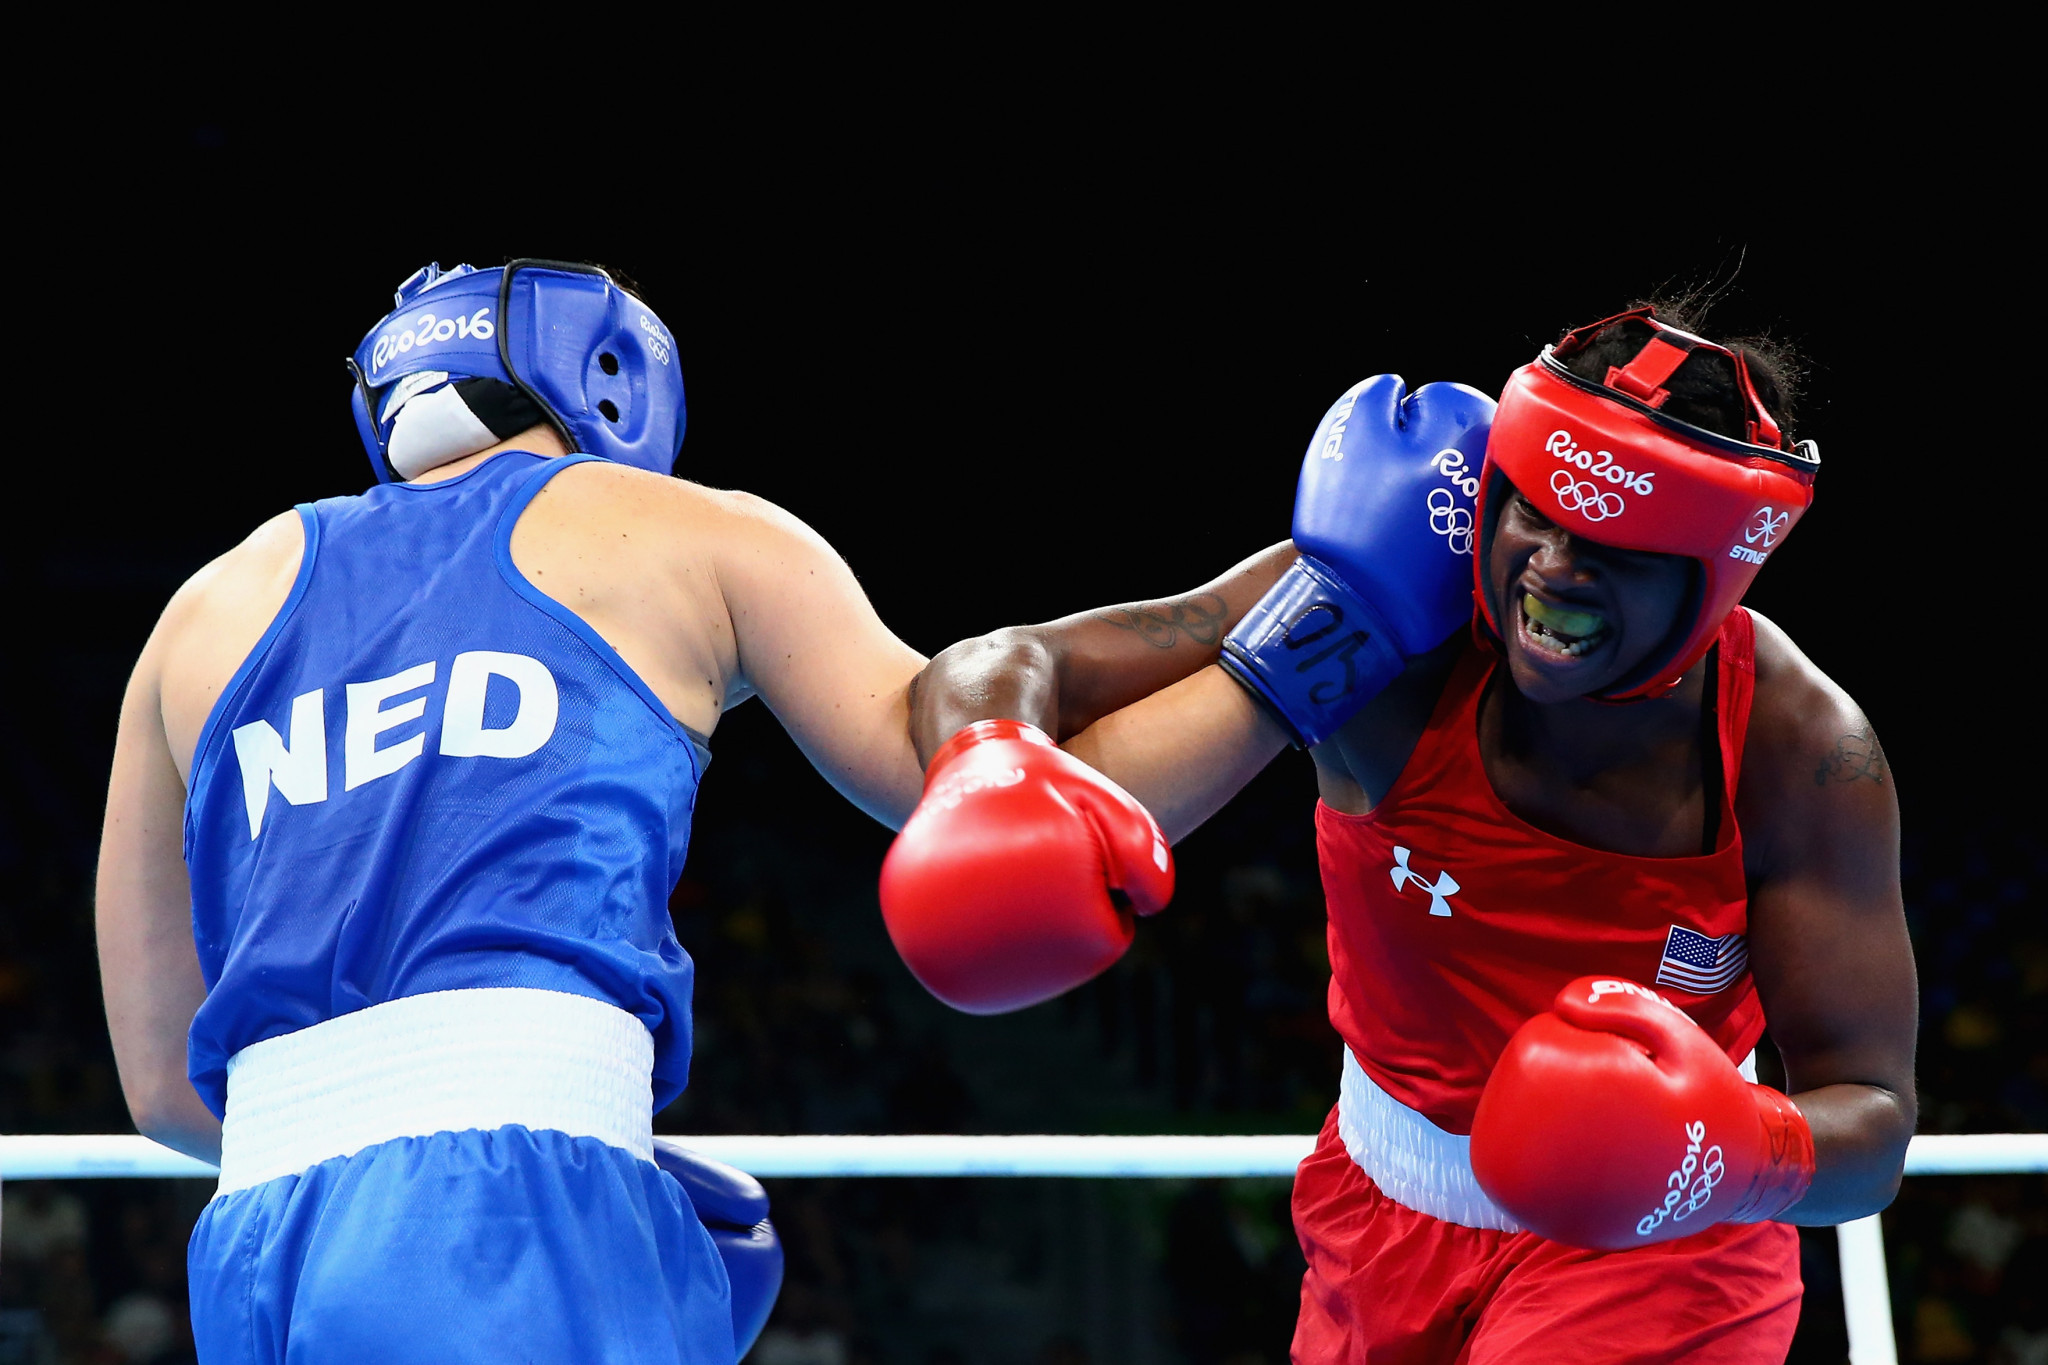 The programme could be seen as an effort to boost the number of female boxers competing ©Getty Images